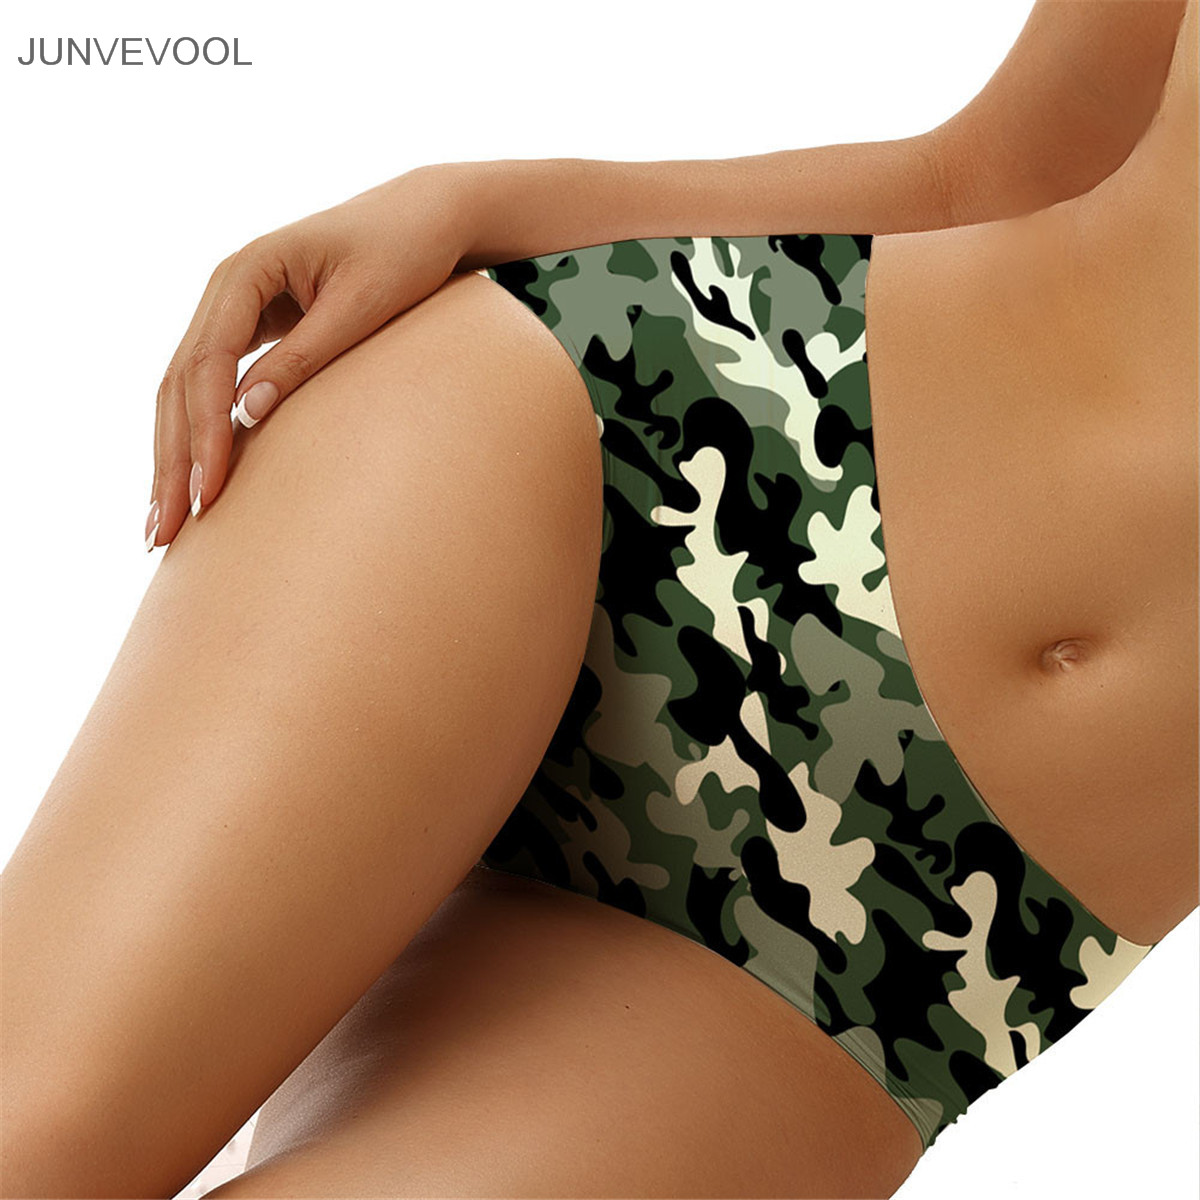 Underwear Womens Girls Panties Hipster Knickers Briefs Pants 3D Camouflage Print Underwear Shorts Big Size Panty Sexy Lingerie ...